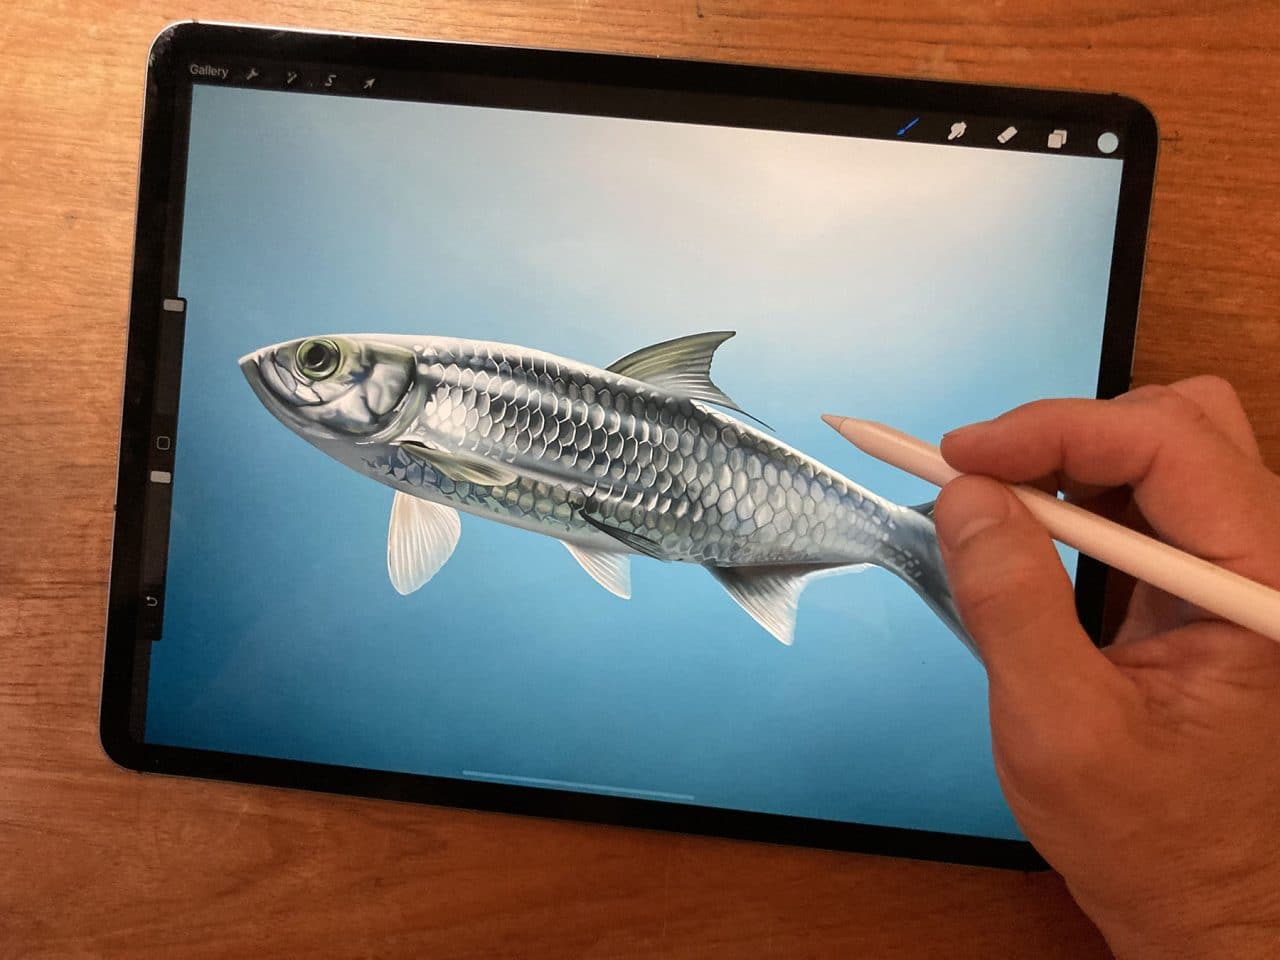 Learn the process of digitally drawing a fish with Procreate on iPad Pro